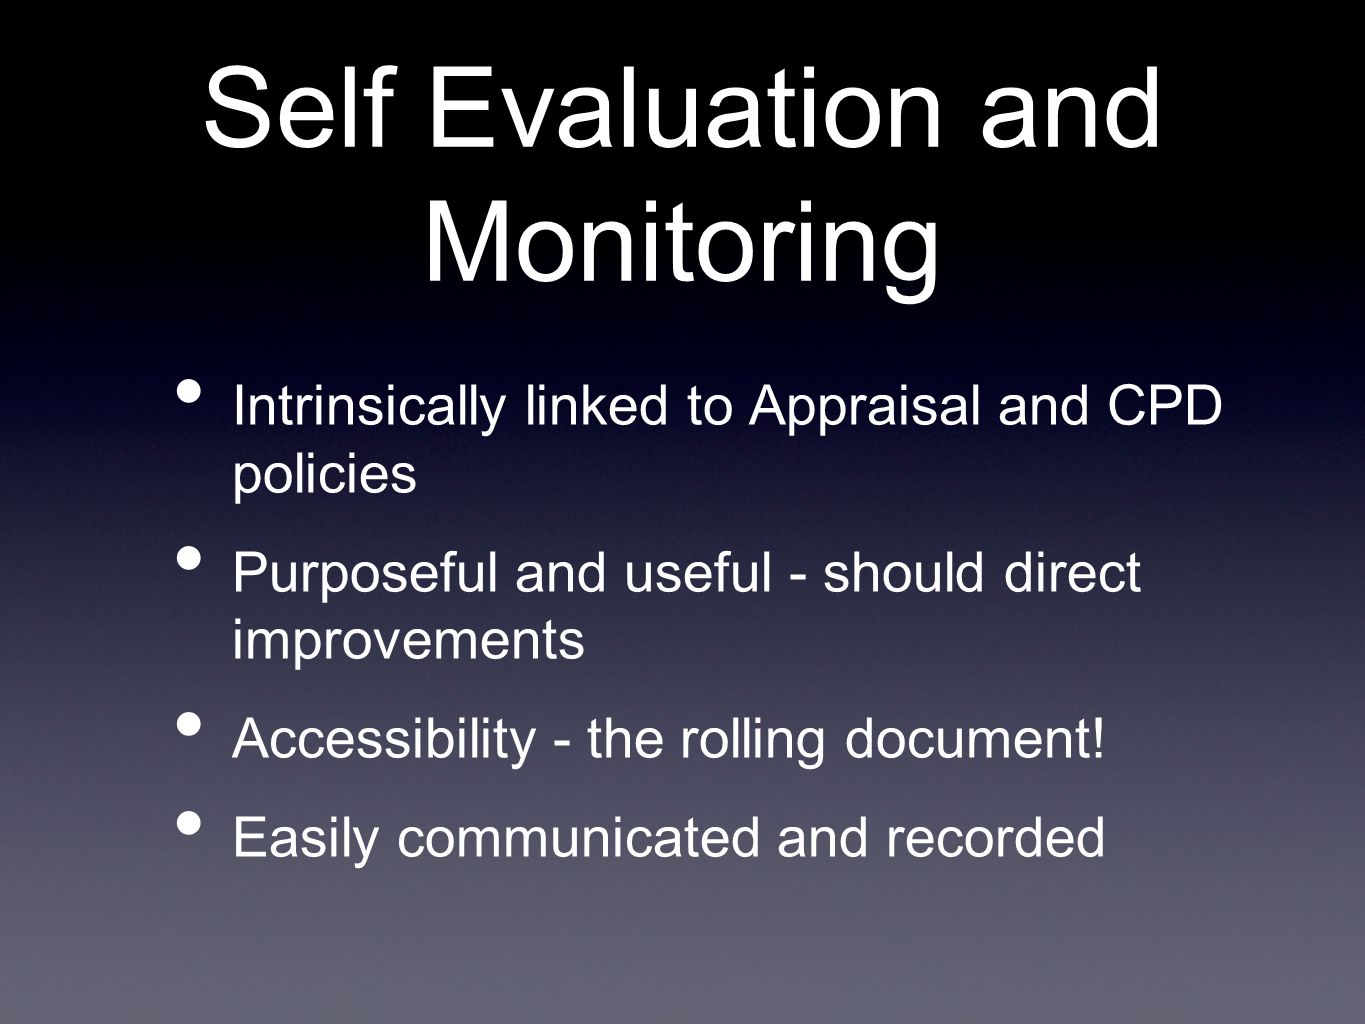 Self Evaluation and Monitoring